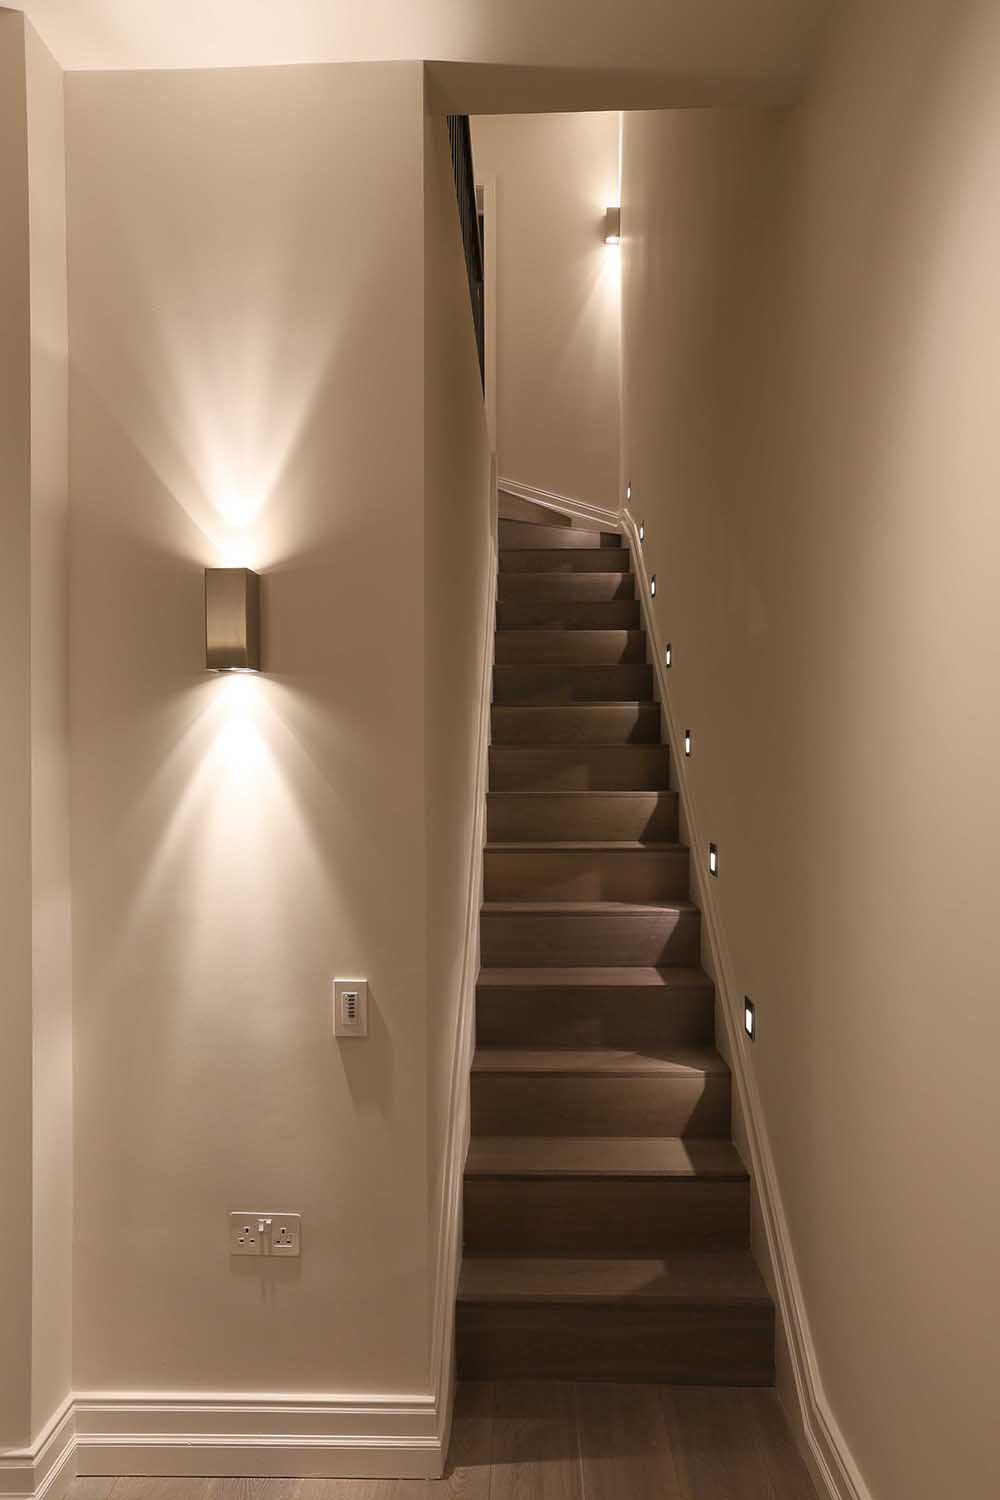 Basement Stair Ceiling Lighting: Interior Wall Sconce Wall Step Light For Staircase